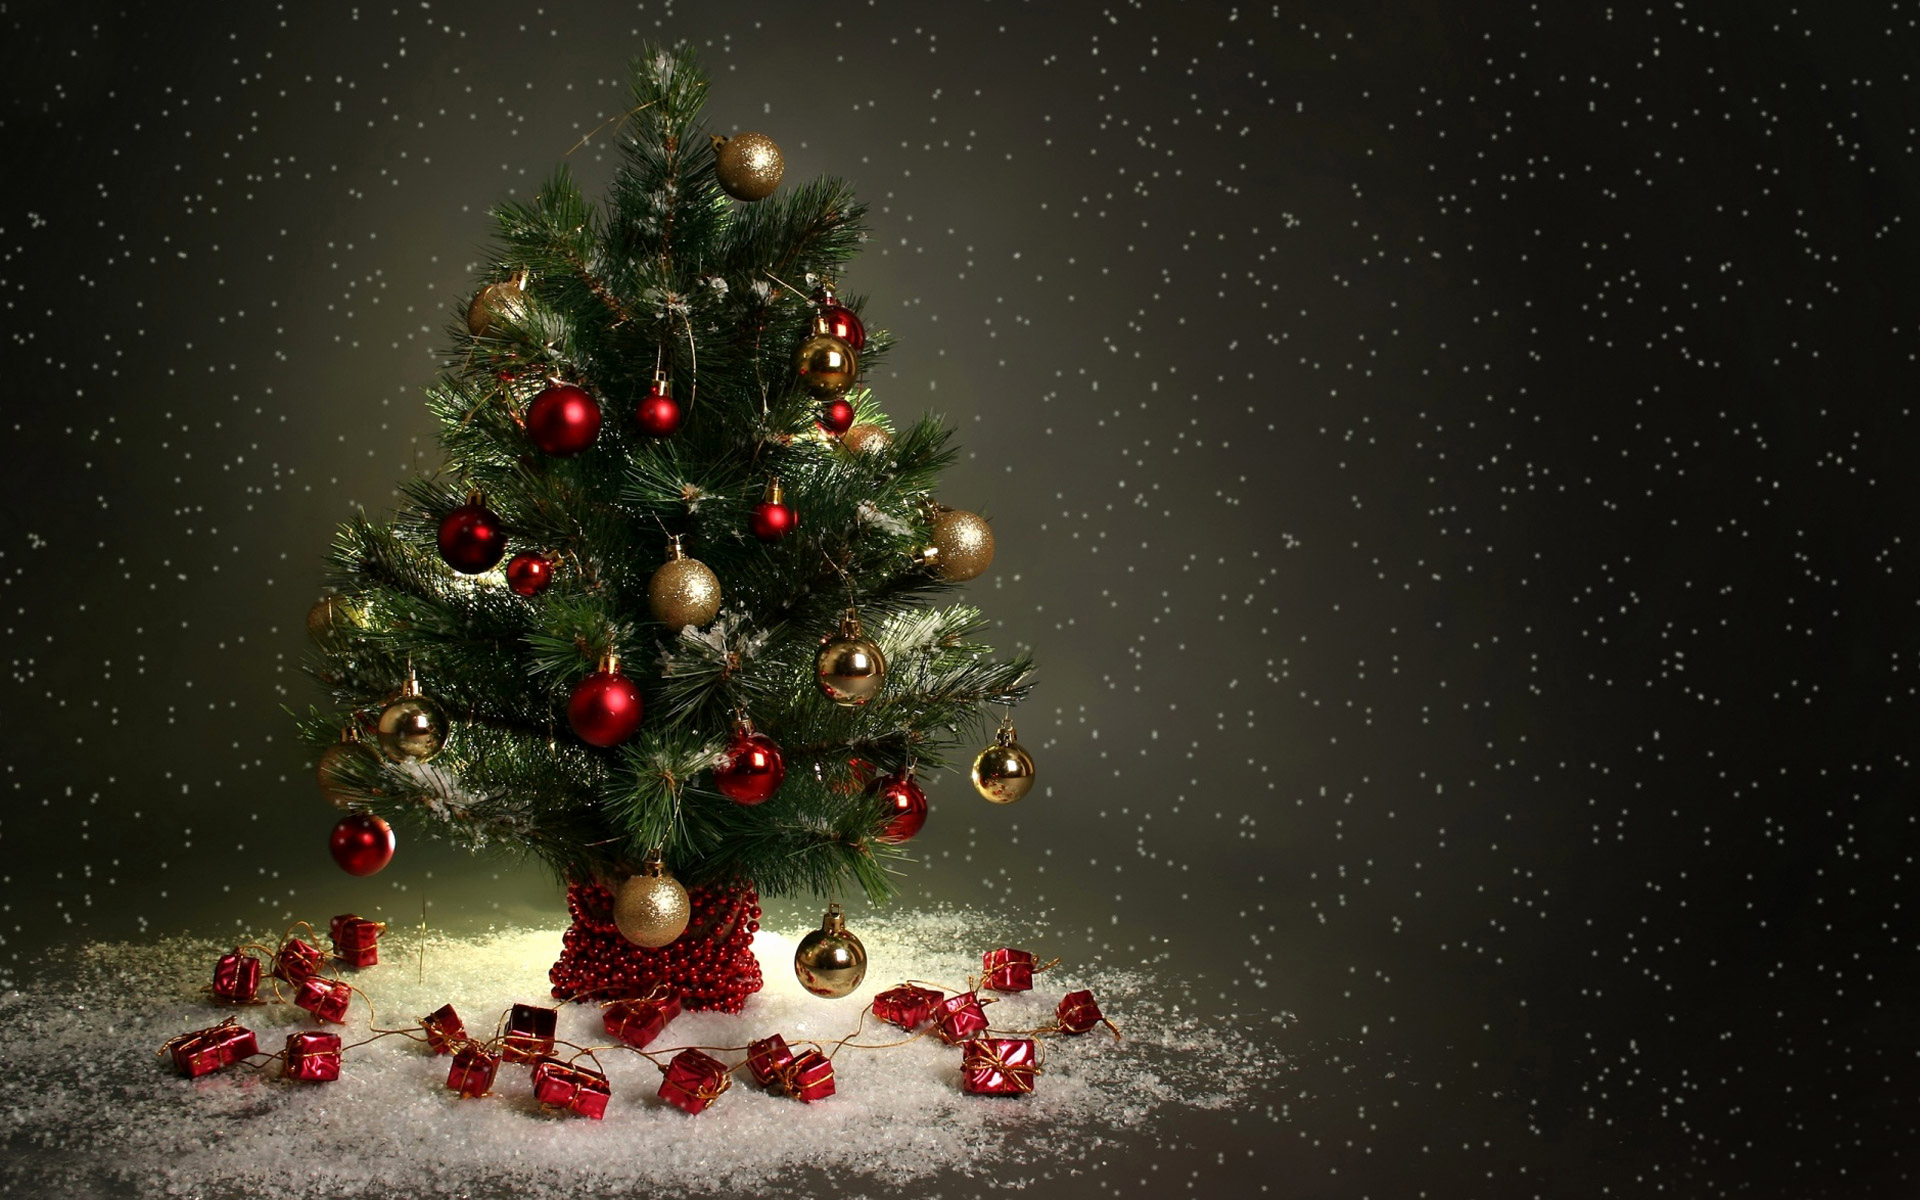 Free Christmas Desktop Wallpaper Lovely Merry Christmas Hd Wallpapers Image & Greetings [free